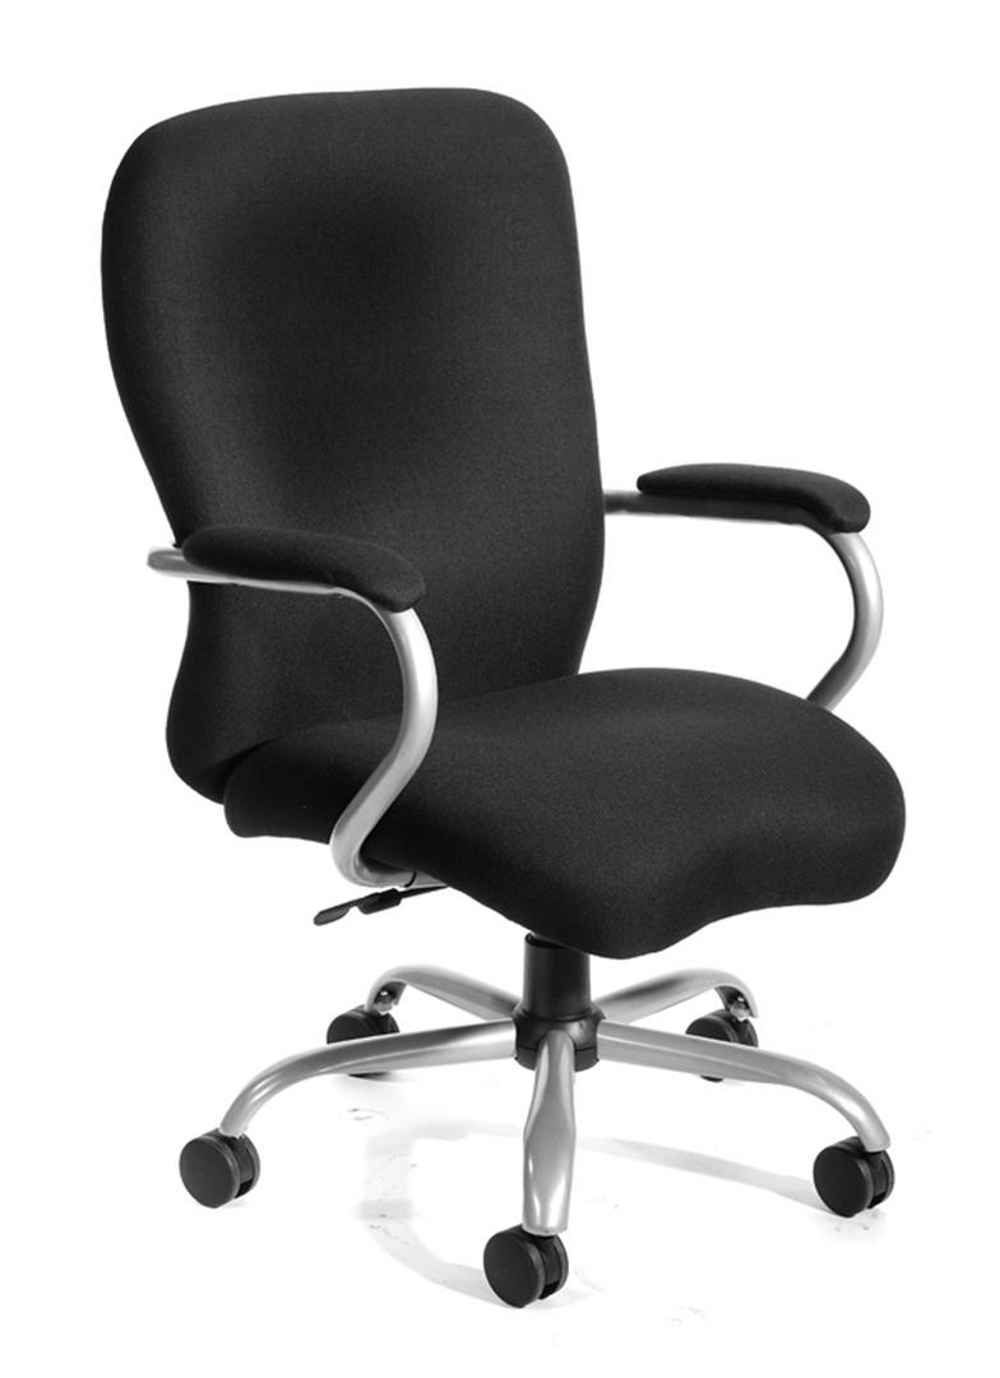 Boss Heavy Duty Black Microfiber Desk Chair